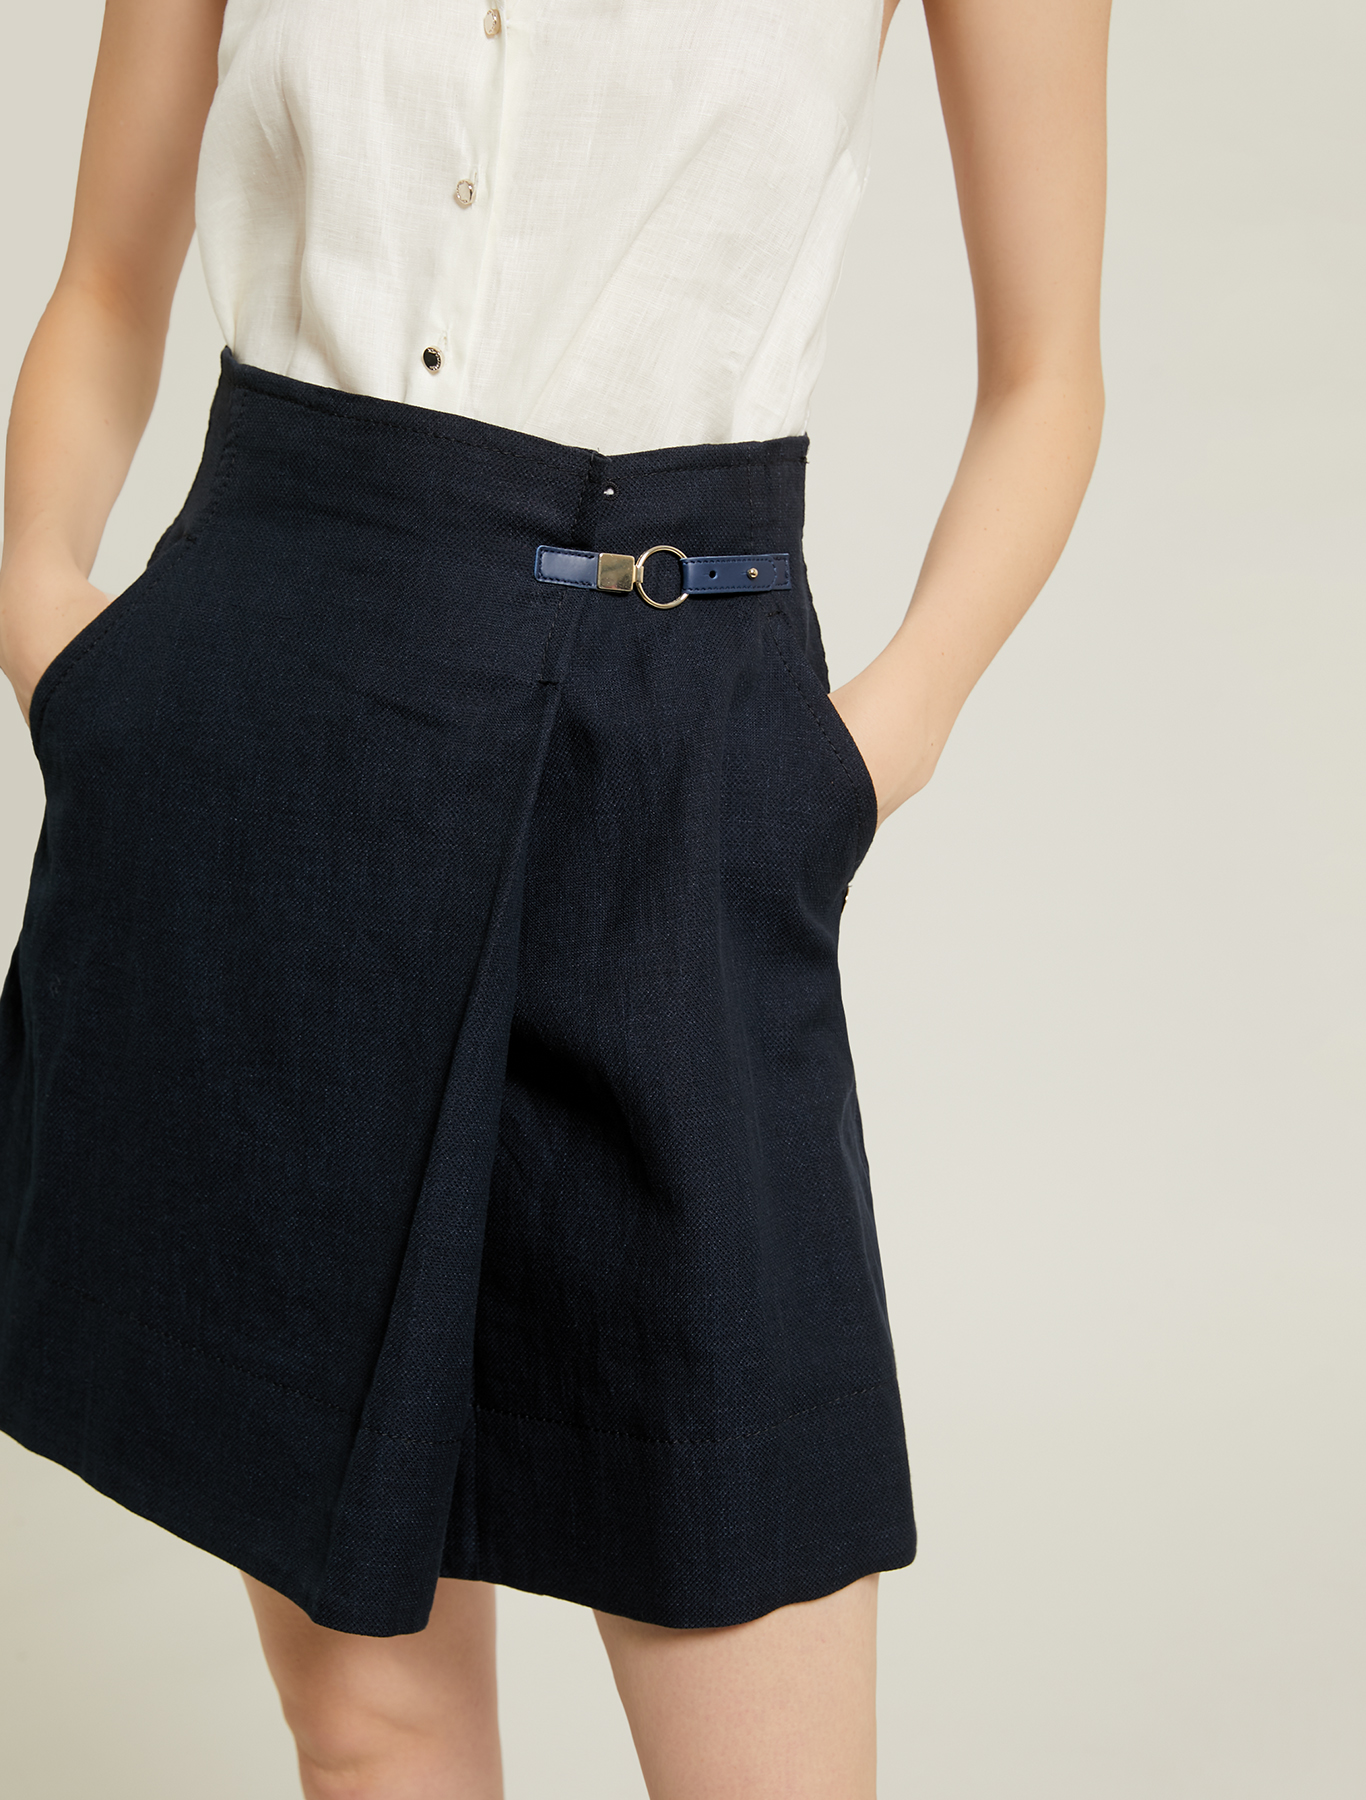 Basketweave linen-cotton skirt - navy blue - pennyblack